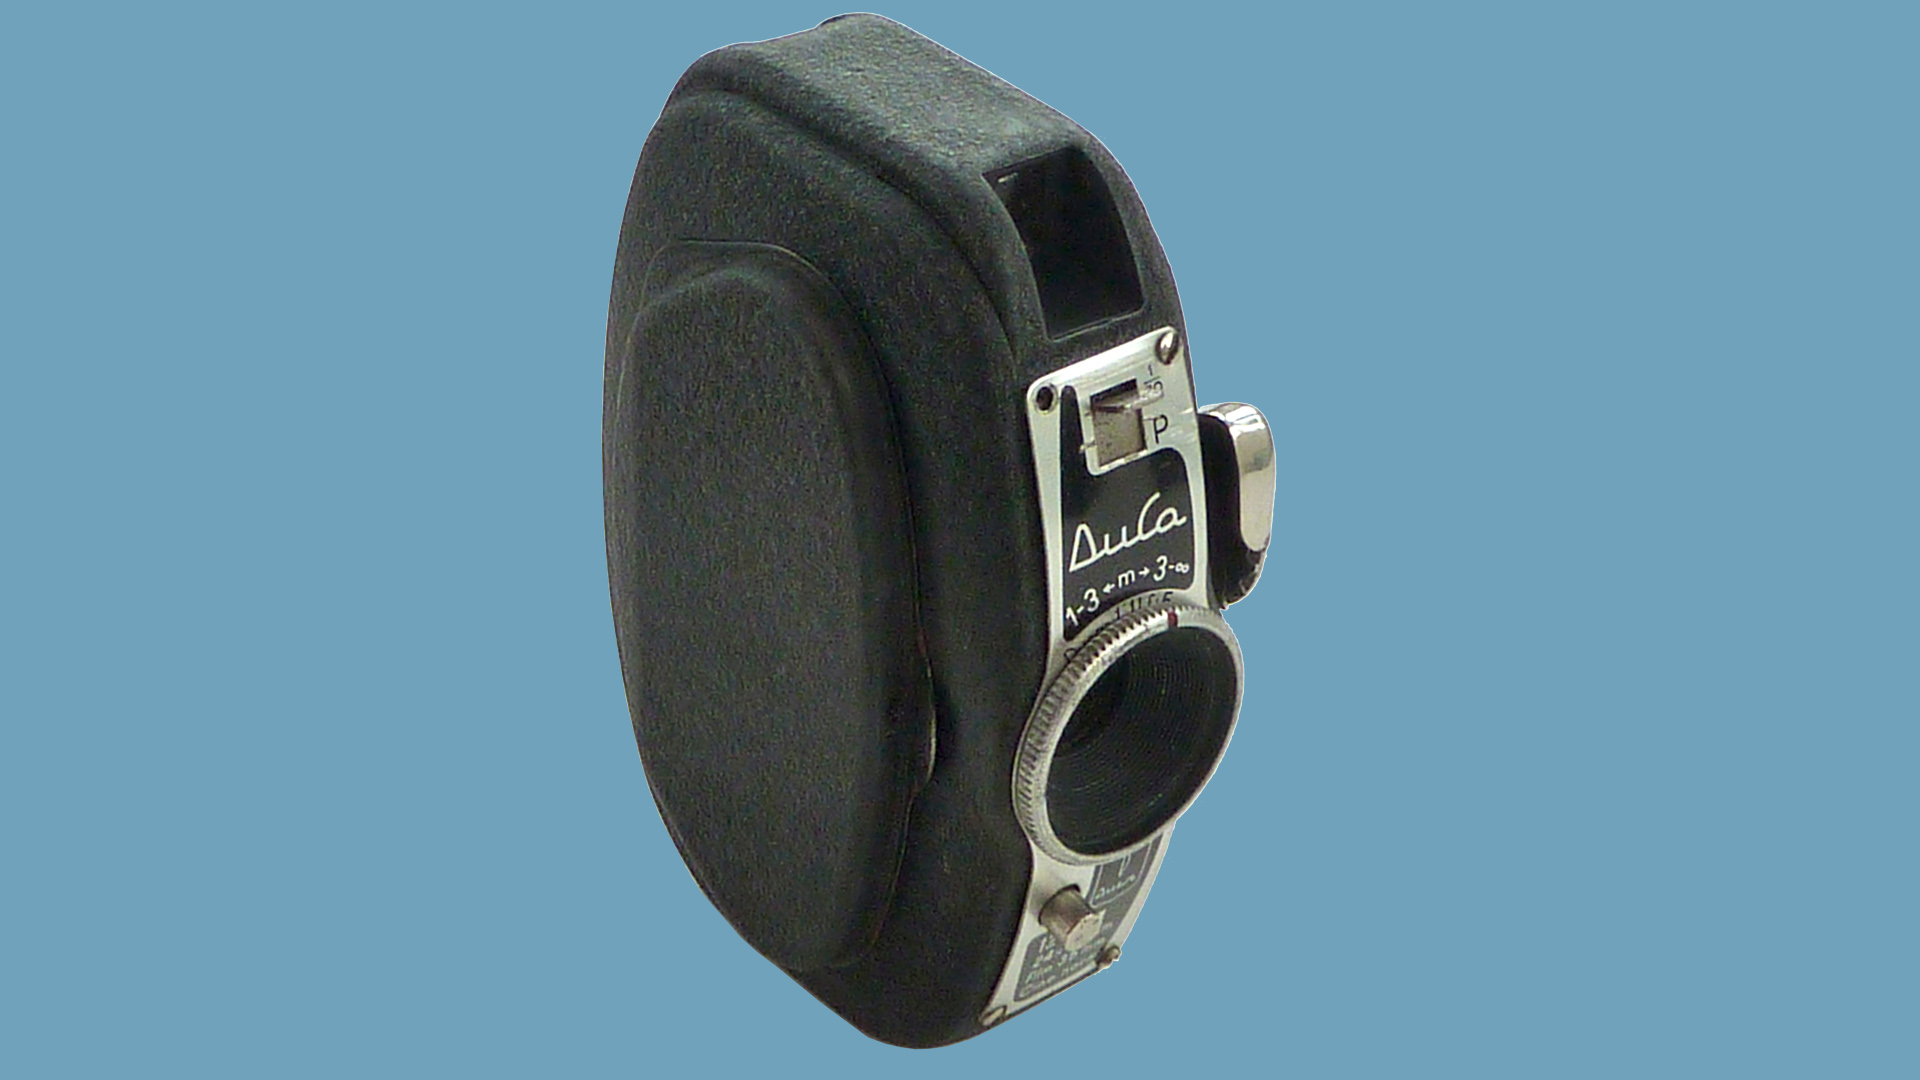 The front of the Durst Duca camera on a blue background